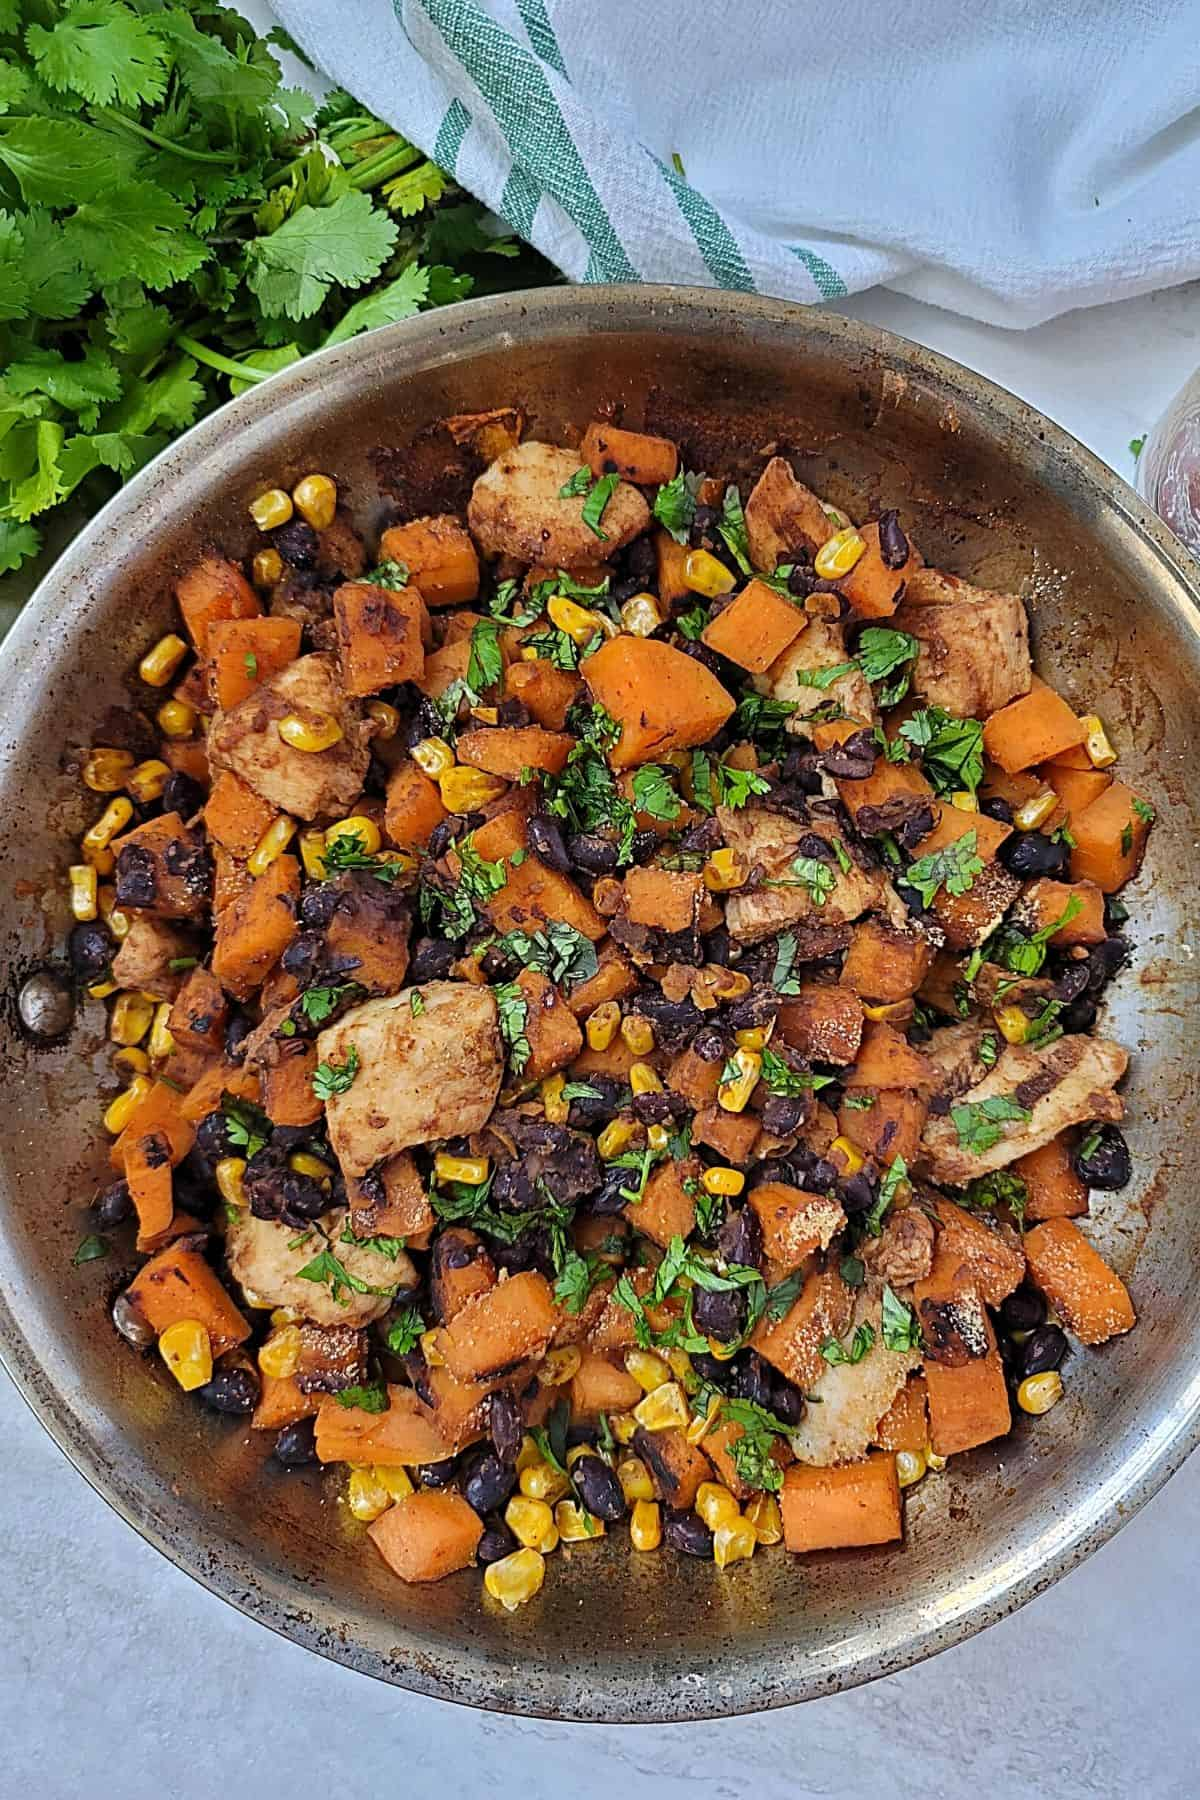 Skillet with chicken, sweet potatoes, and black beans.